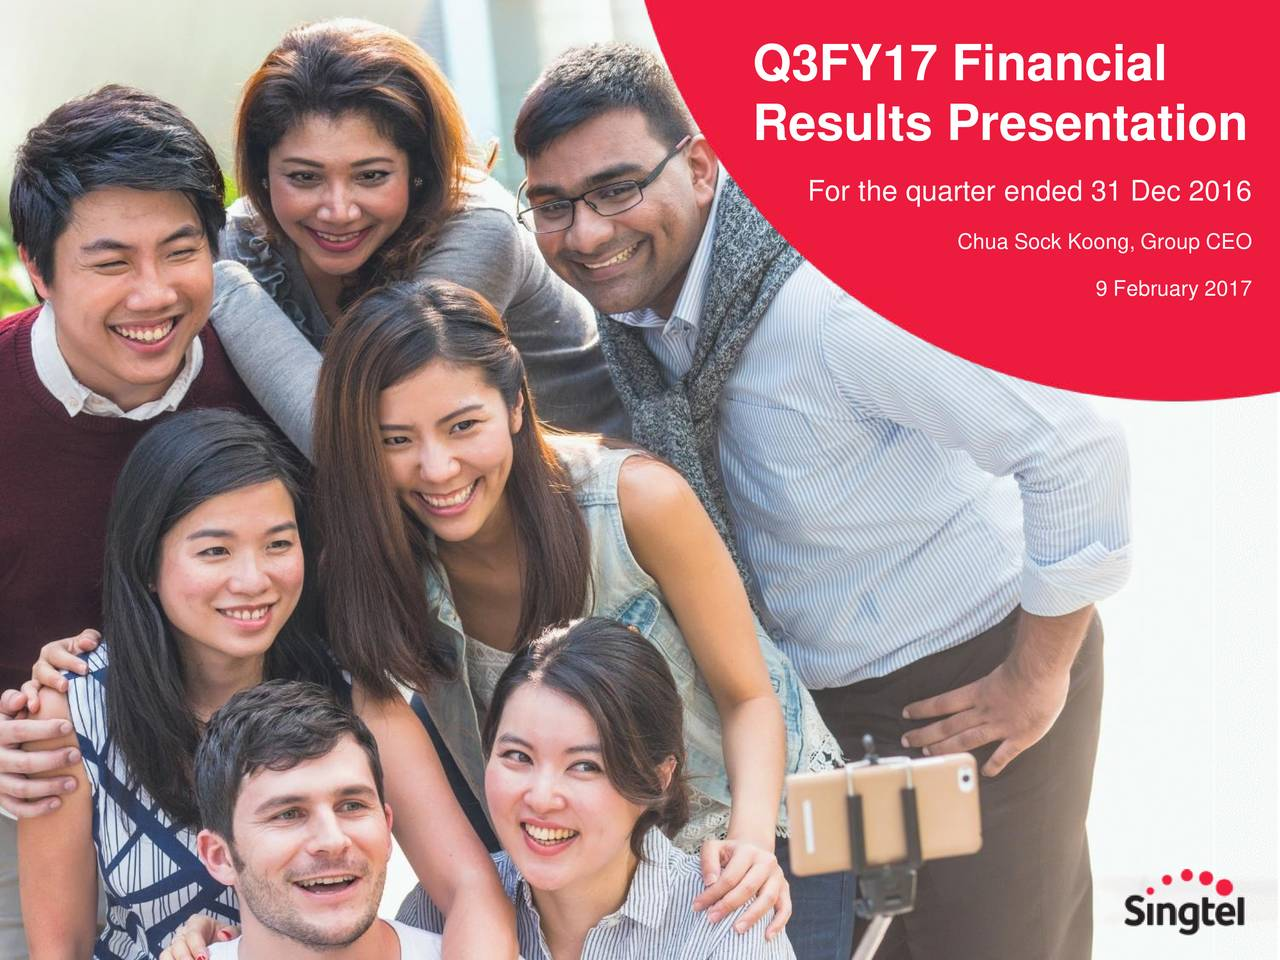 Results Presentation For the quarter ended 31 Dec 2016 Chua Sock Koong, Group CEO 9 February 2017